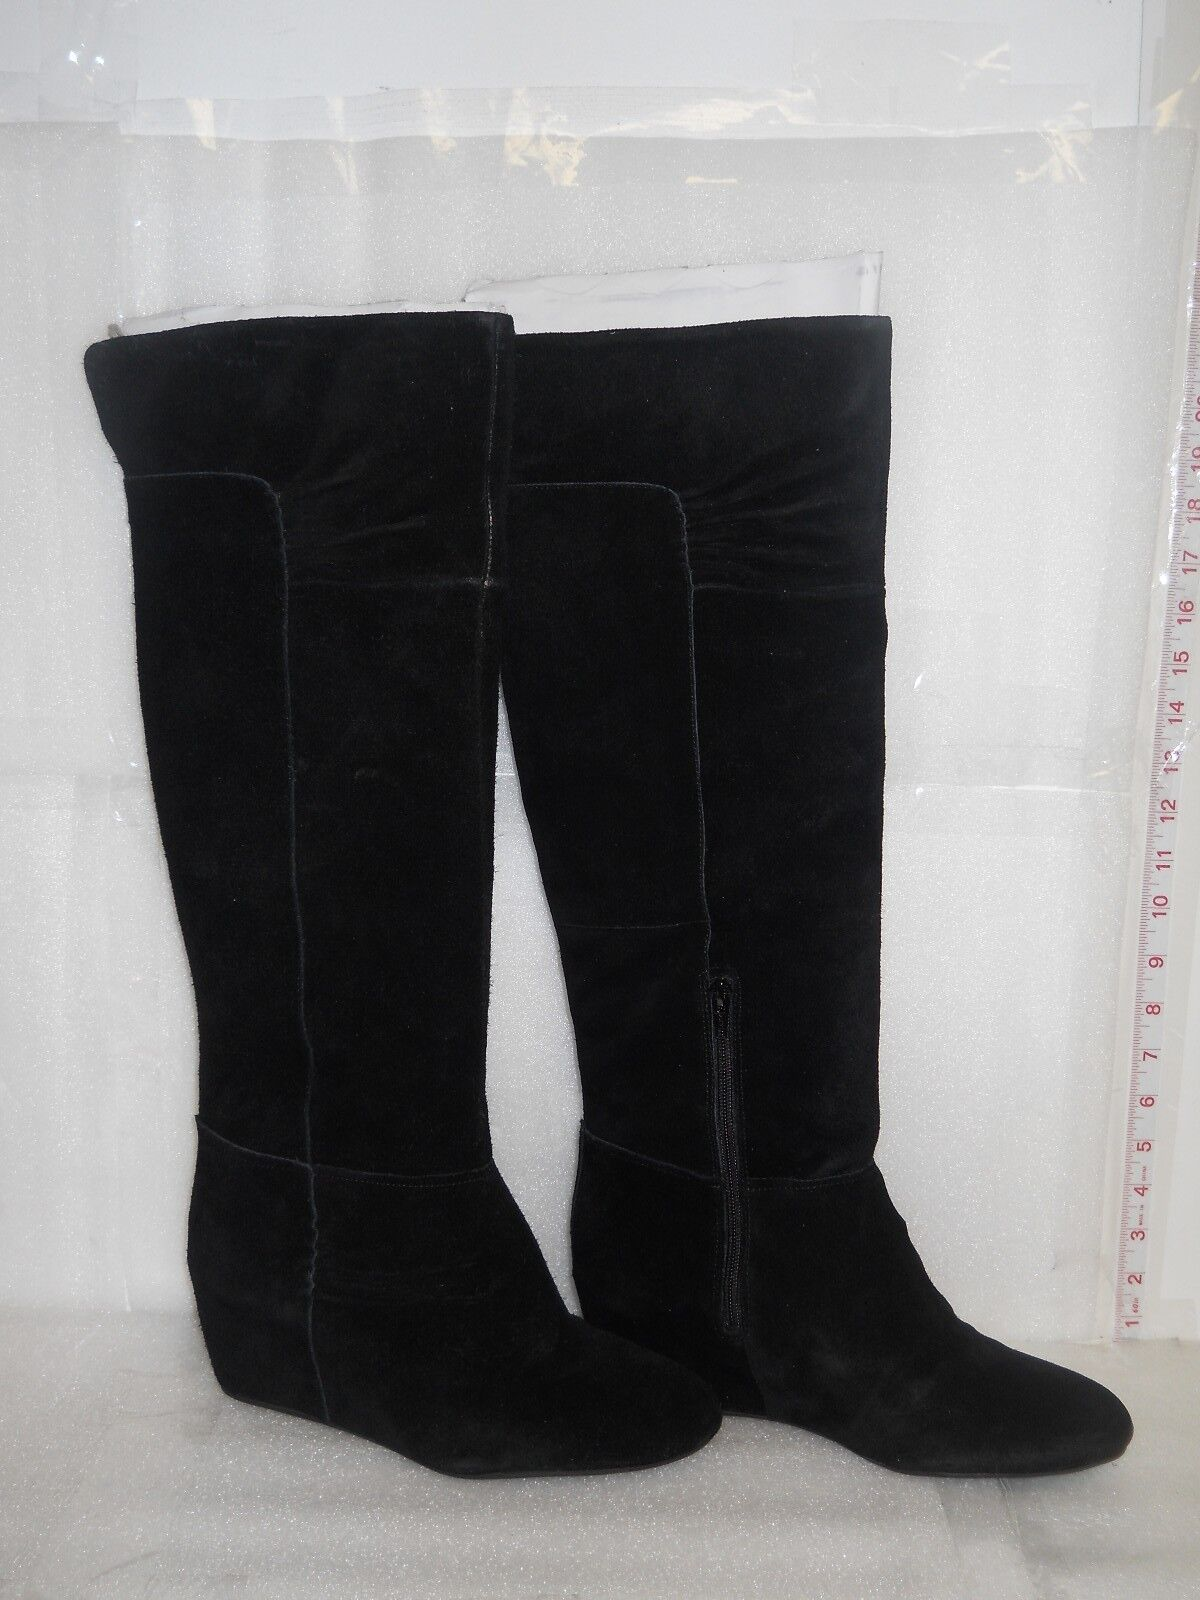 Nine West New Womens Amelie Black Suede Leather Wedge Boots 6 M Shoes NWB